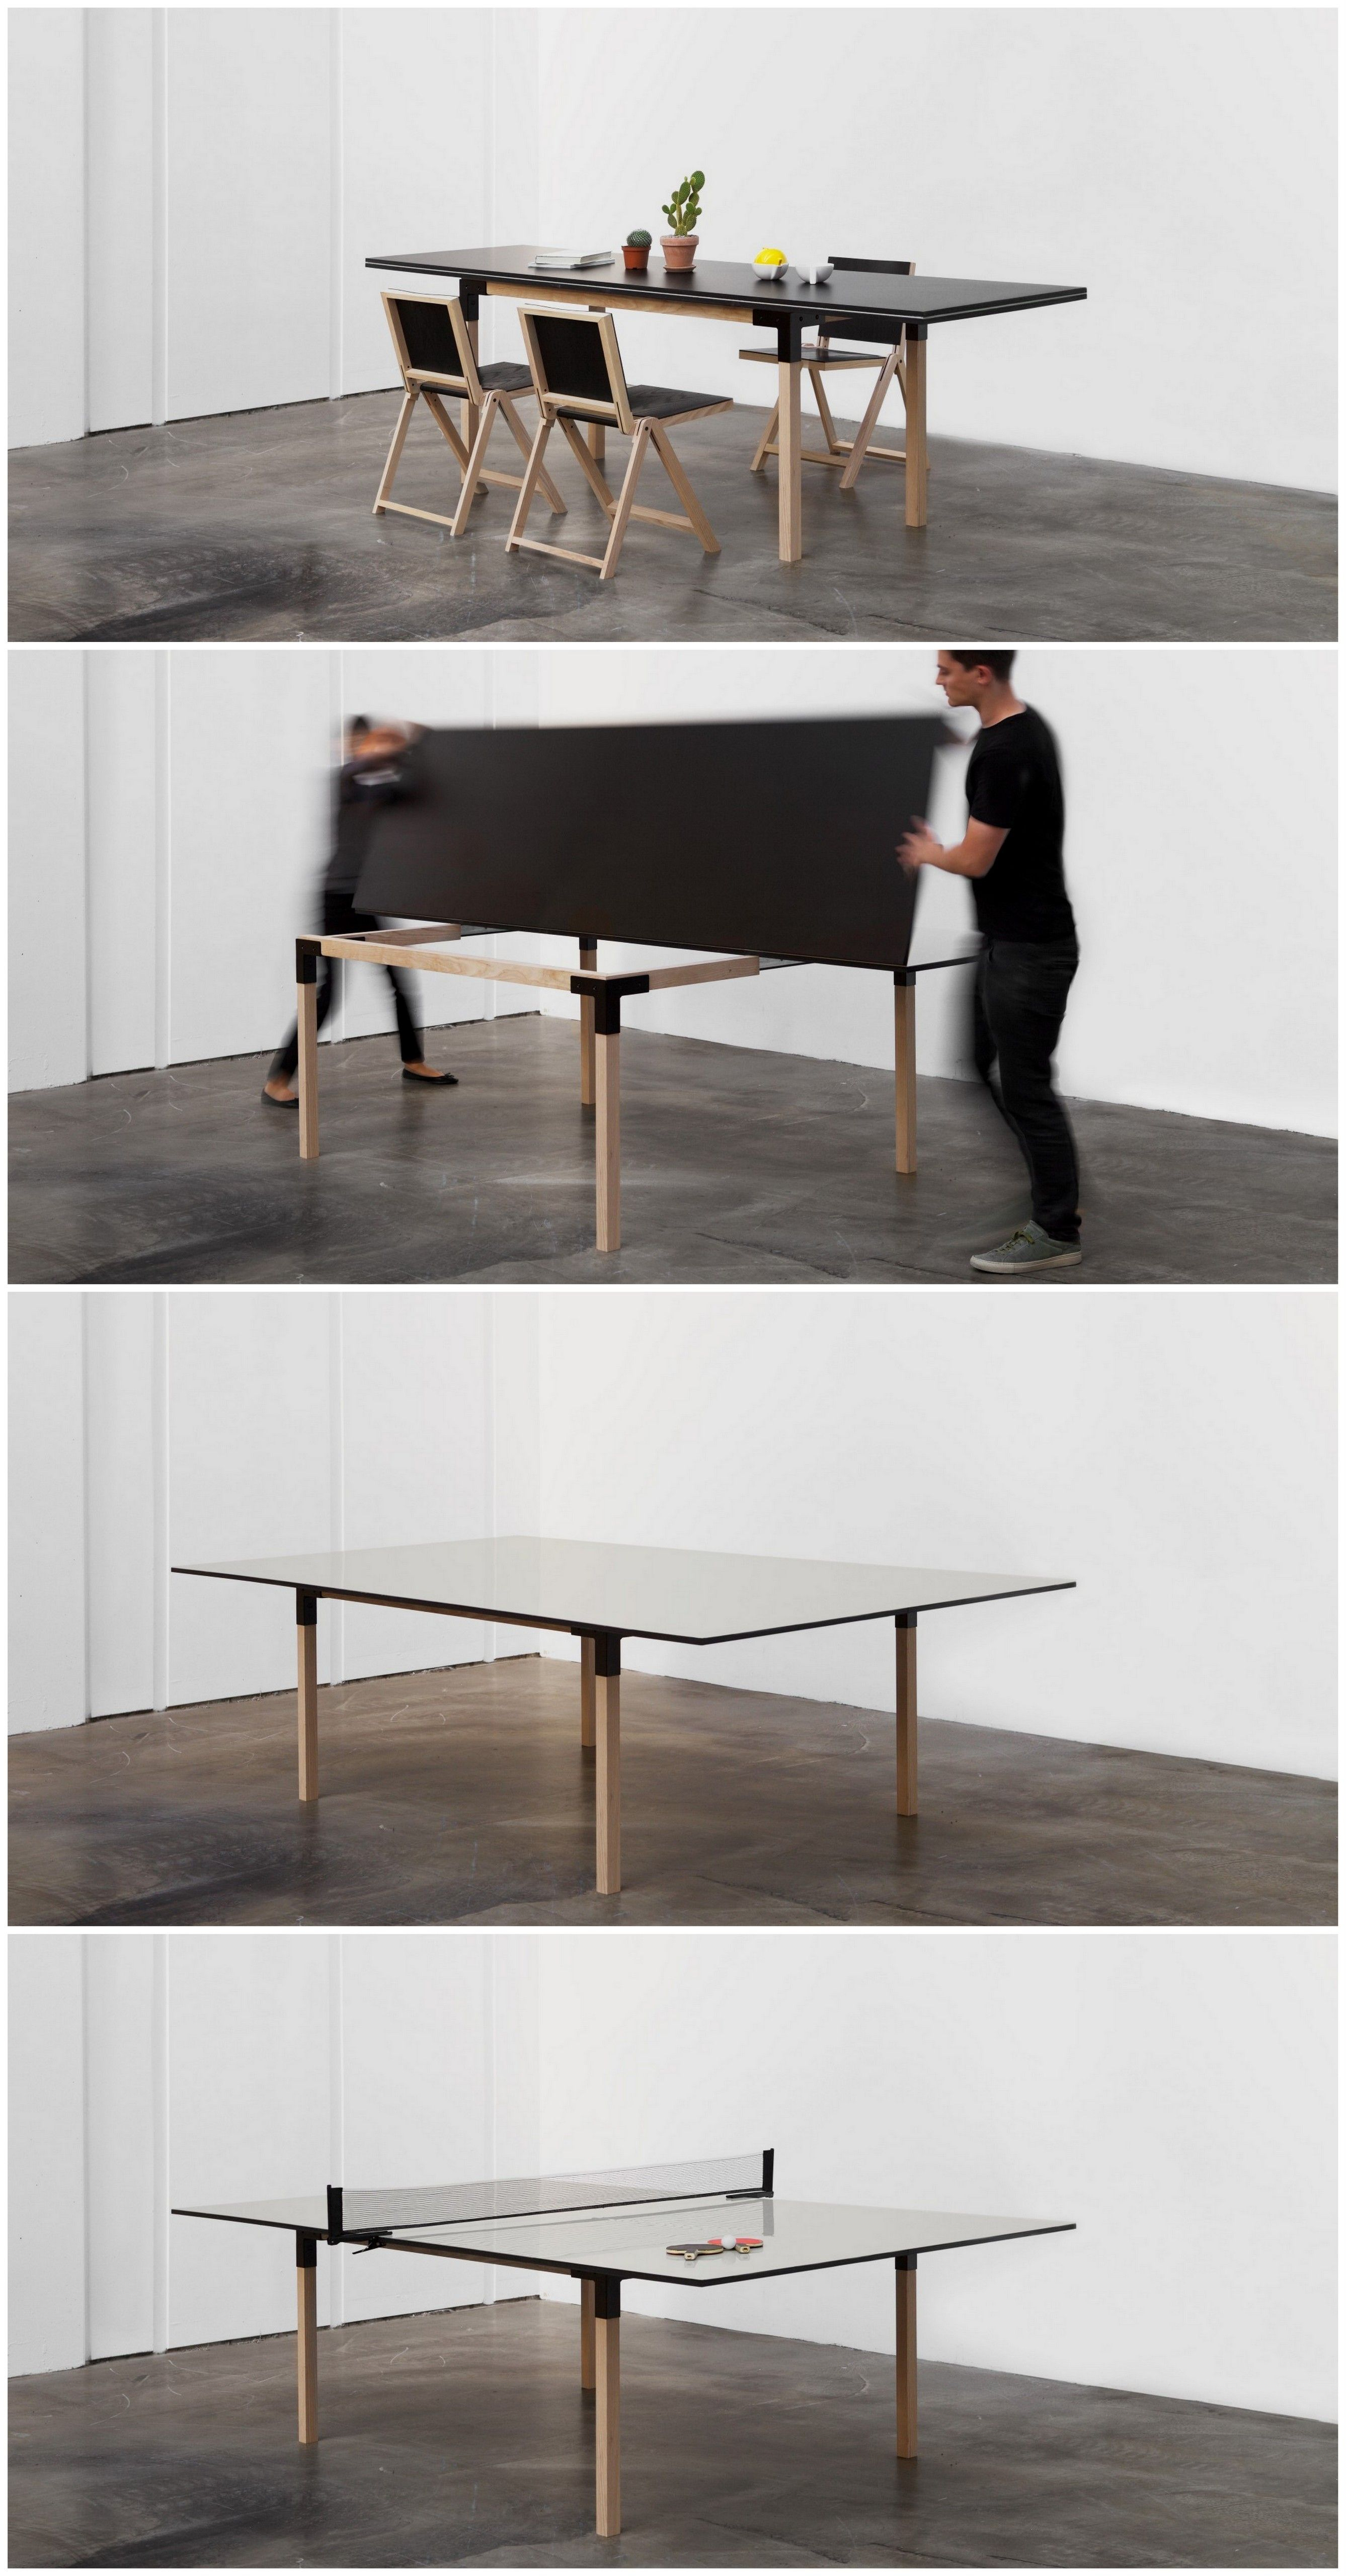 From A 8 People Dining Table To A Full Size Ping Pong Table! Brings